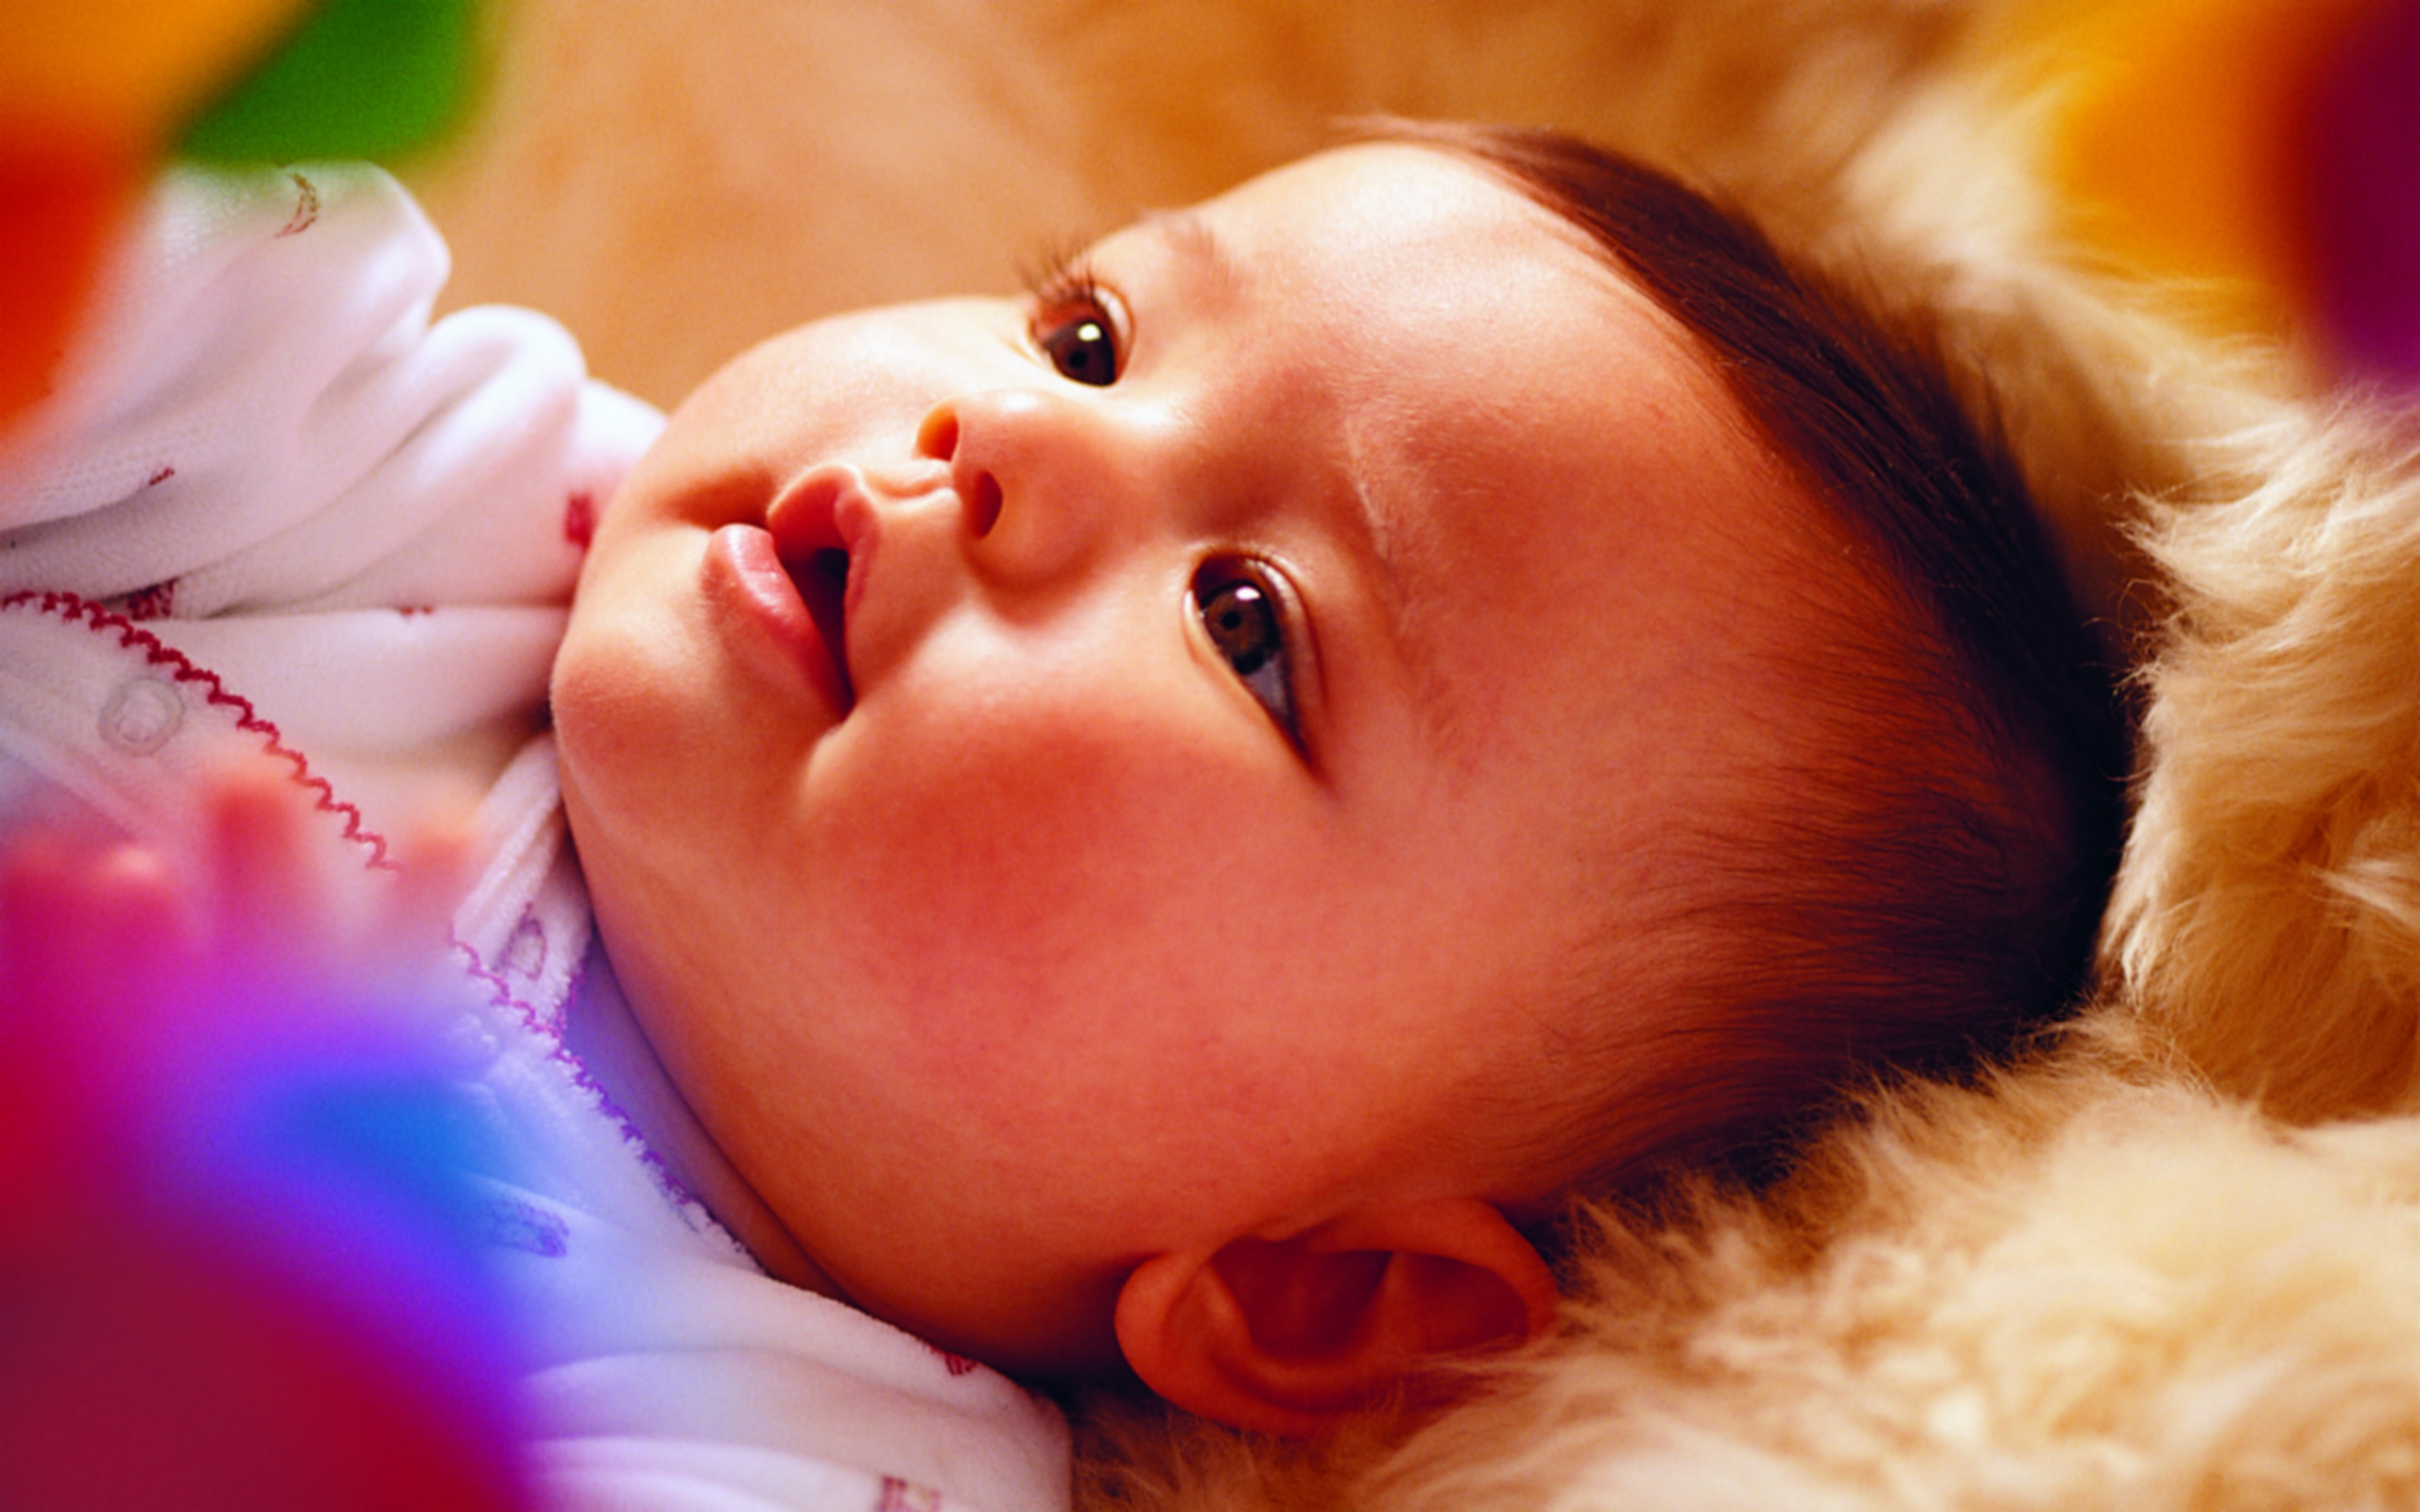 Free_Wallpaper__Includes_a_Cute_and_Beautiful_Baby_Cant_Help_Looking_at_Him_Long